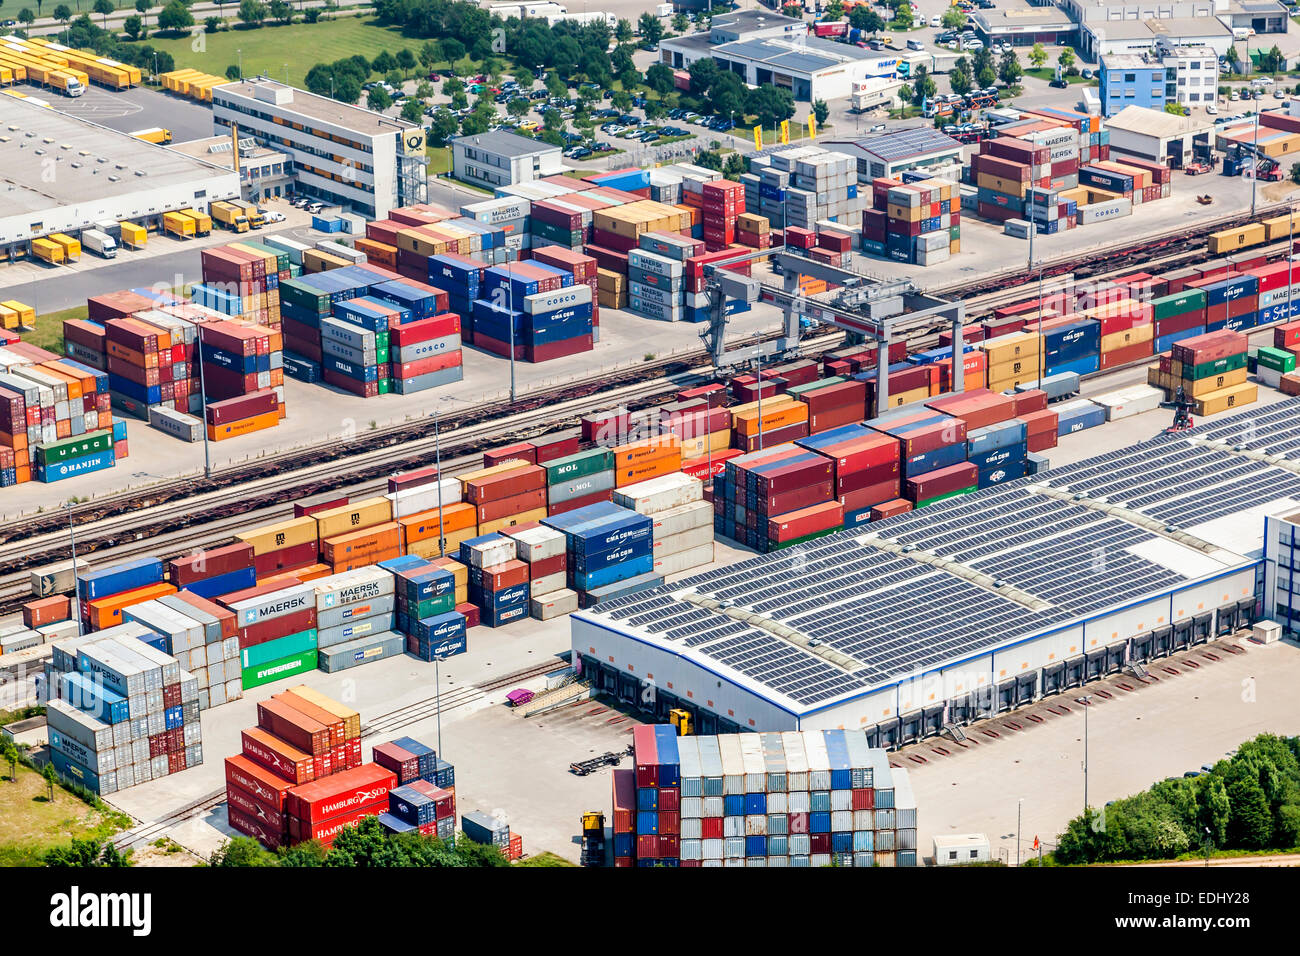 Aerial view, Umschlagbahnhof, logistics center, Regensburg, Upper Palatinate, Bavaria, Germany - Stock Image